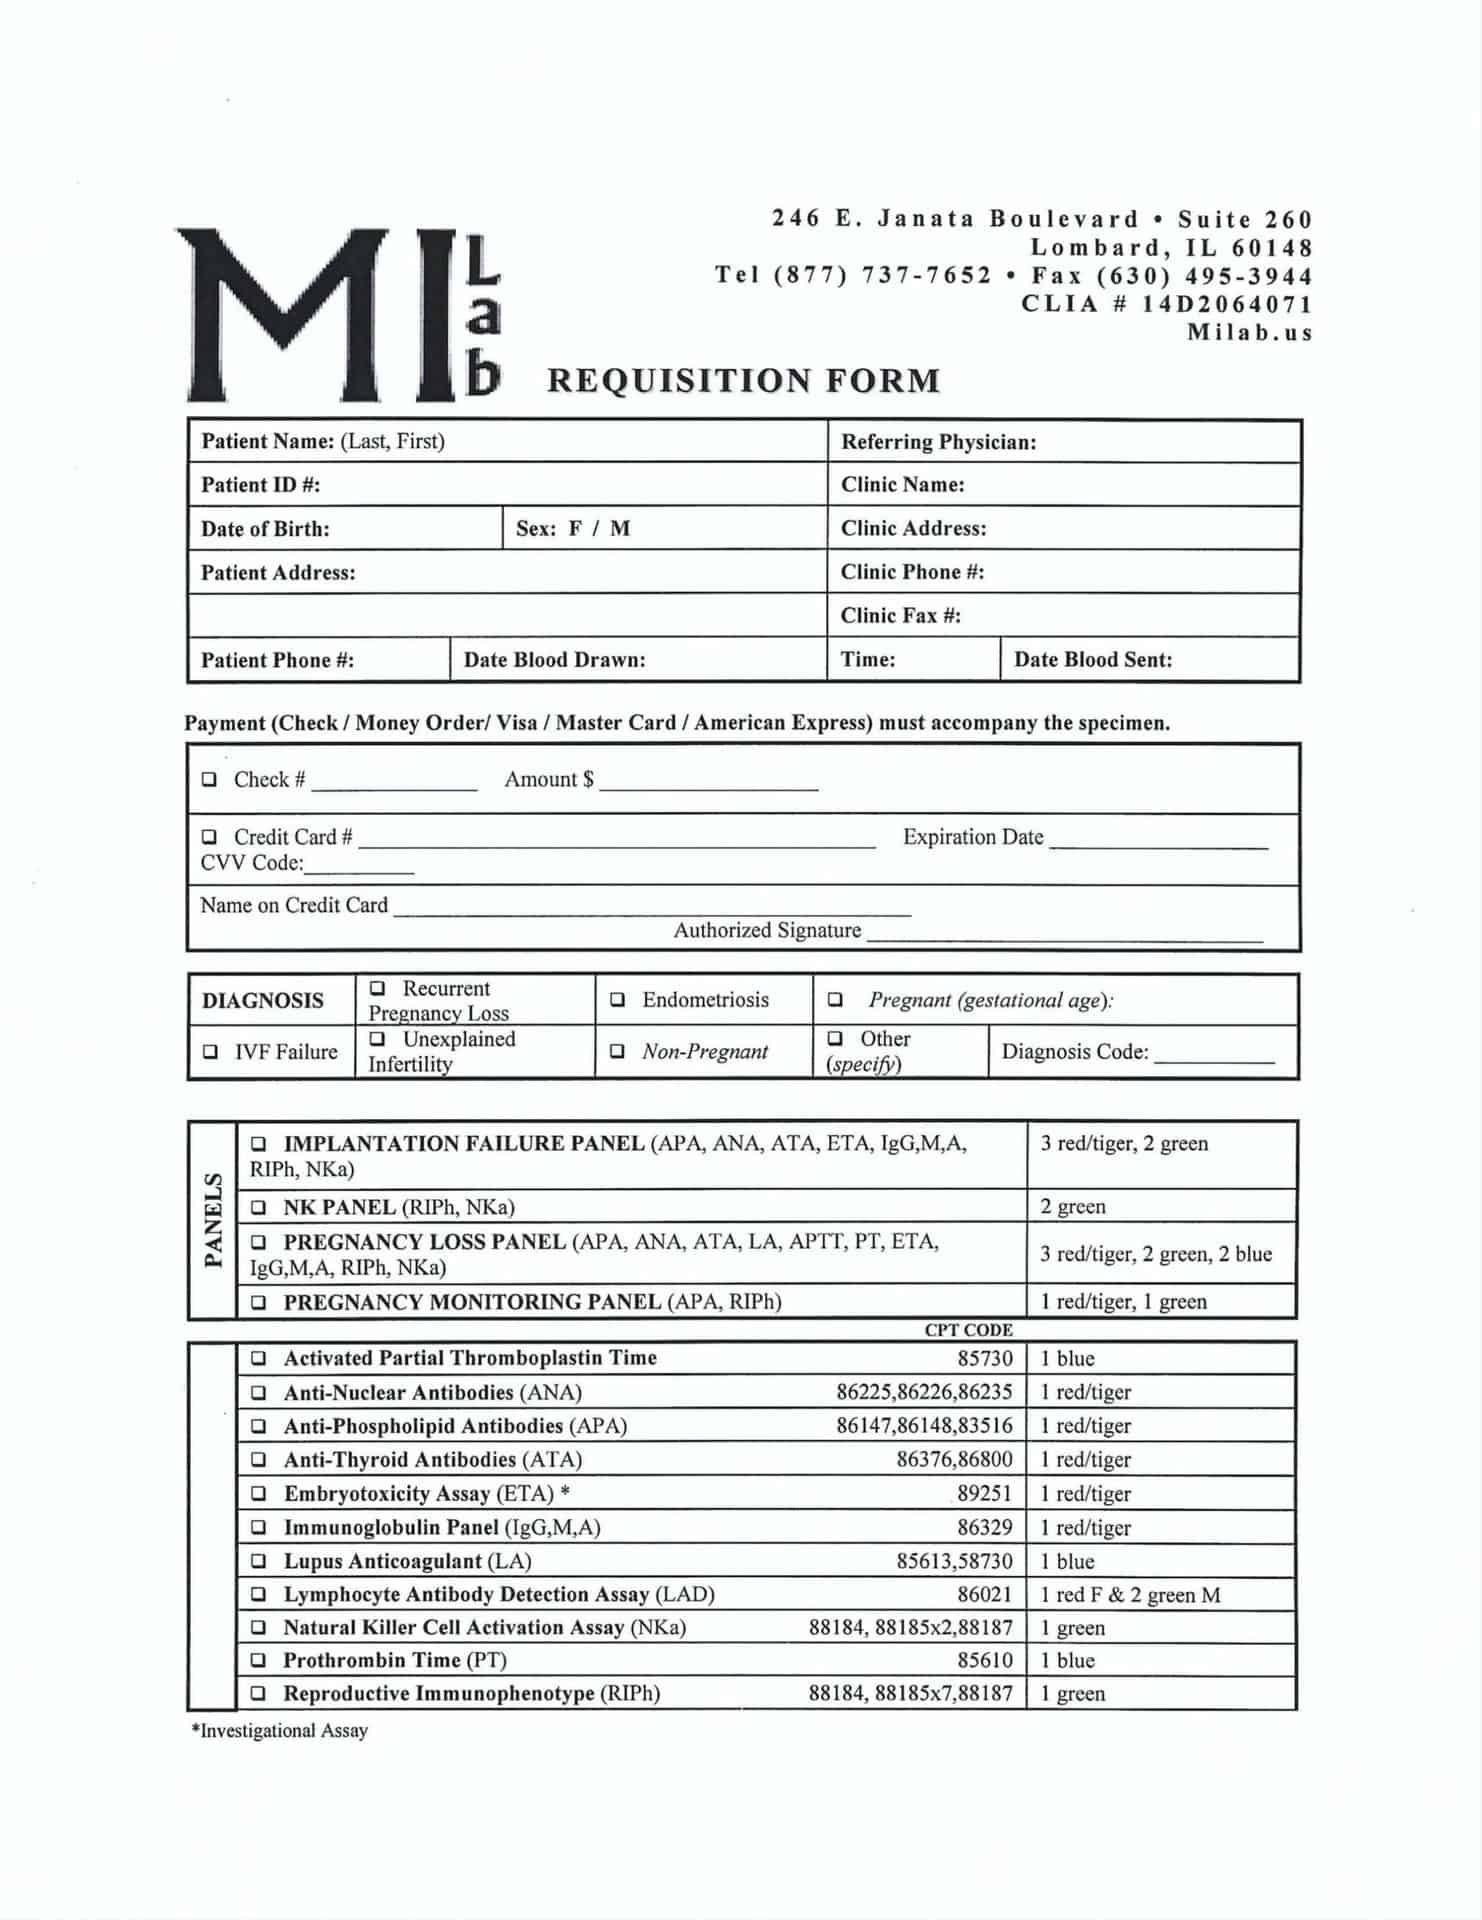 MILab.us Requisition Form 7-1-21_page-0001